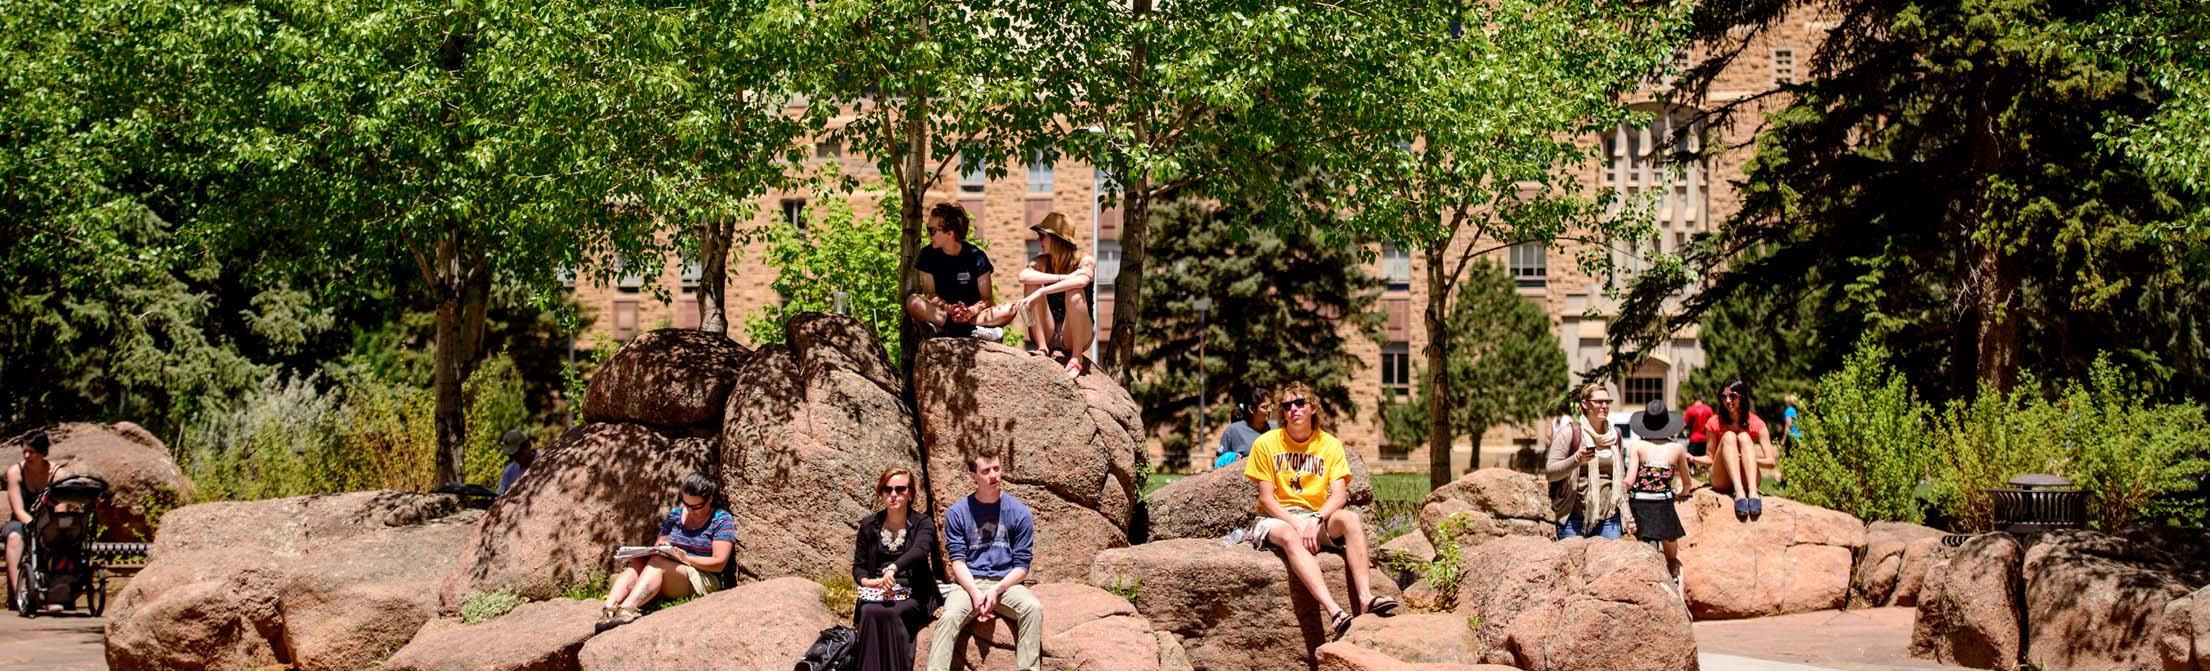 scenic view of students on campus of University of Wyoming